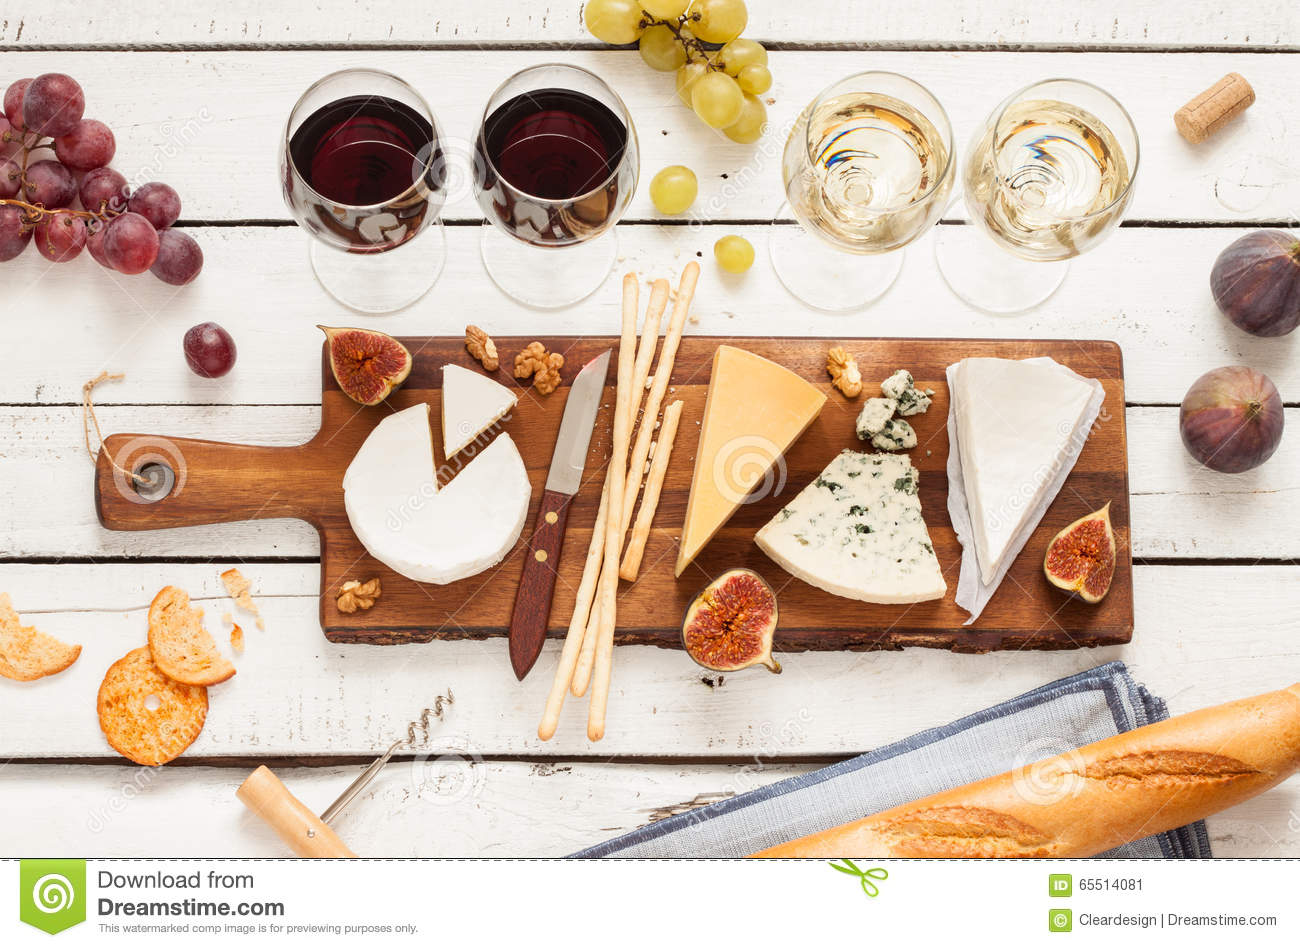 Red and white wine plus different kinds of cheeses (cheeseboard)